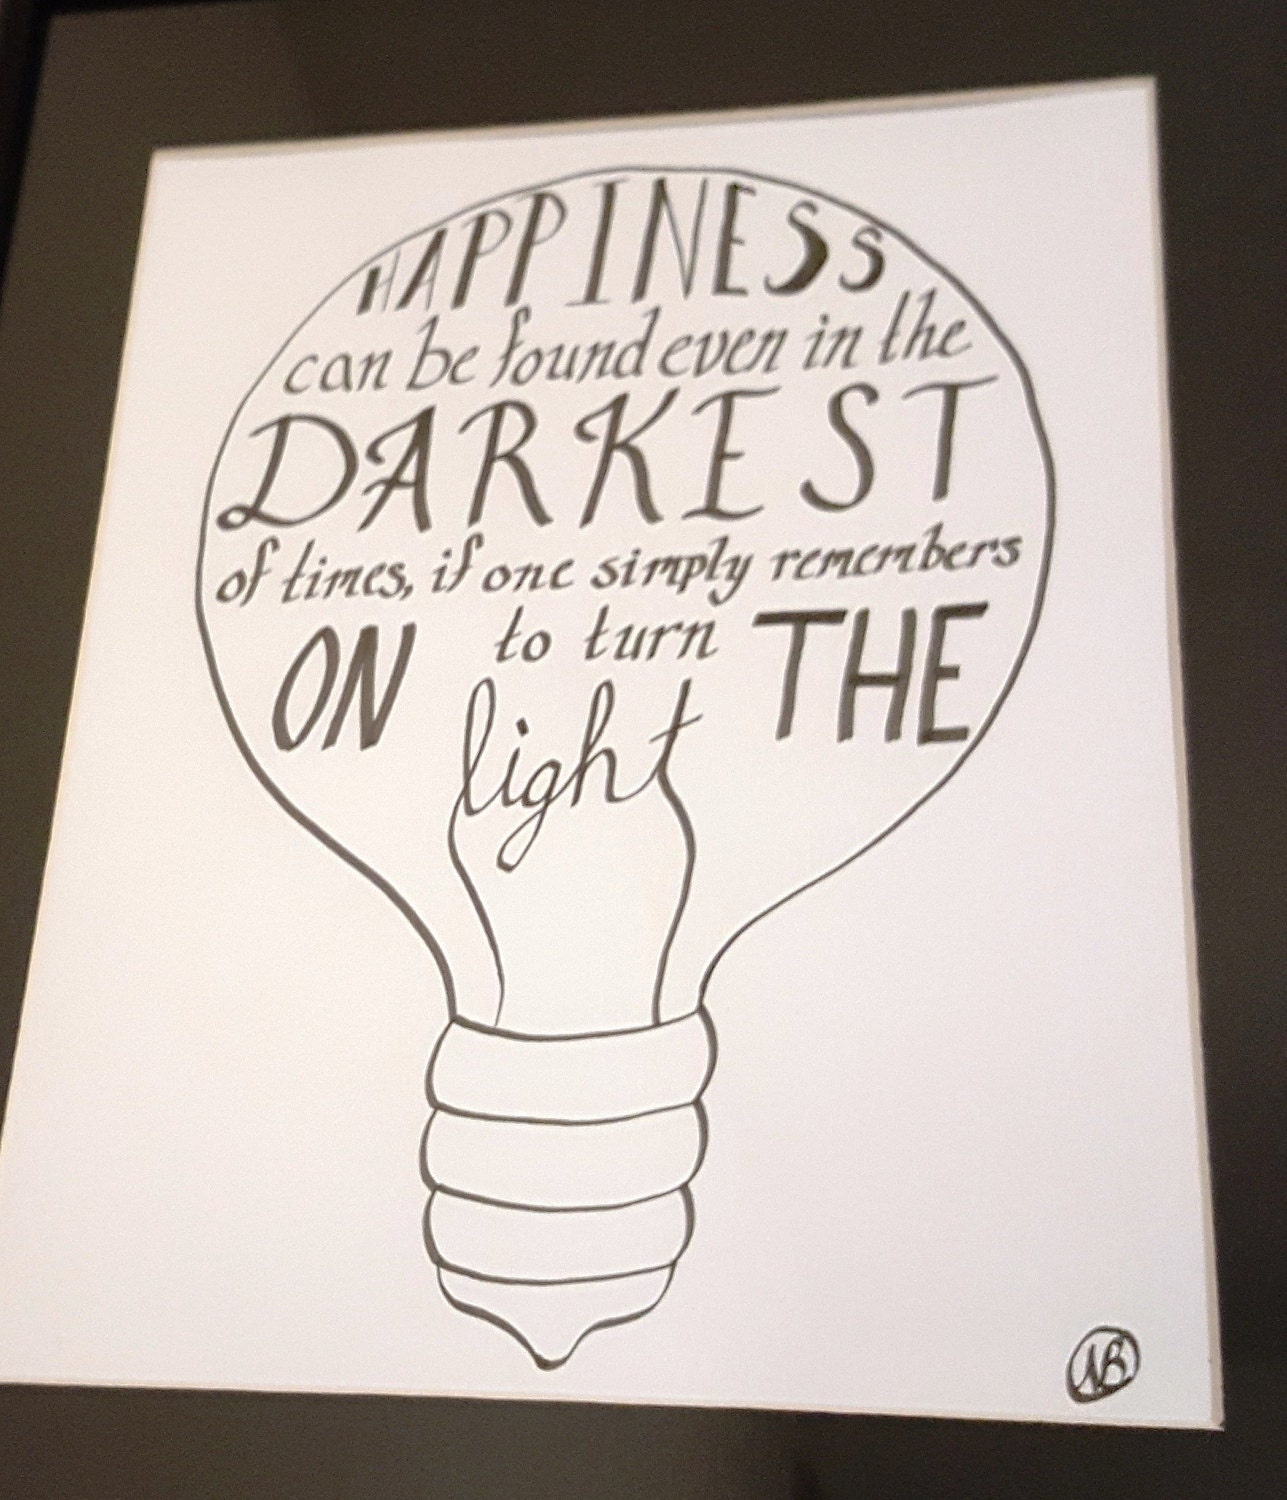 Happiness Can Be Found In The Darkest Of Times Quote: Happiness In Darkest Times Harry Potter Calligraphy Quote In